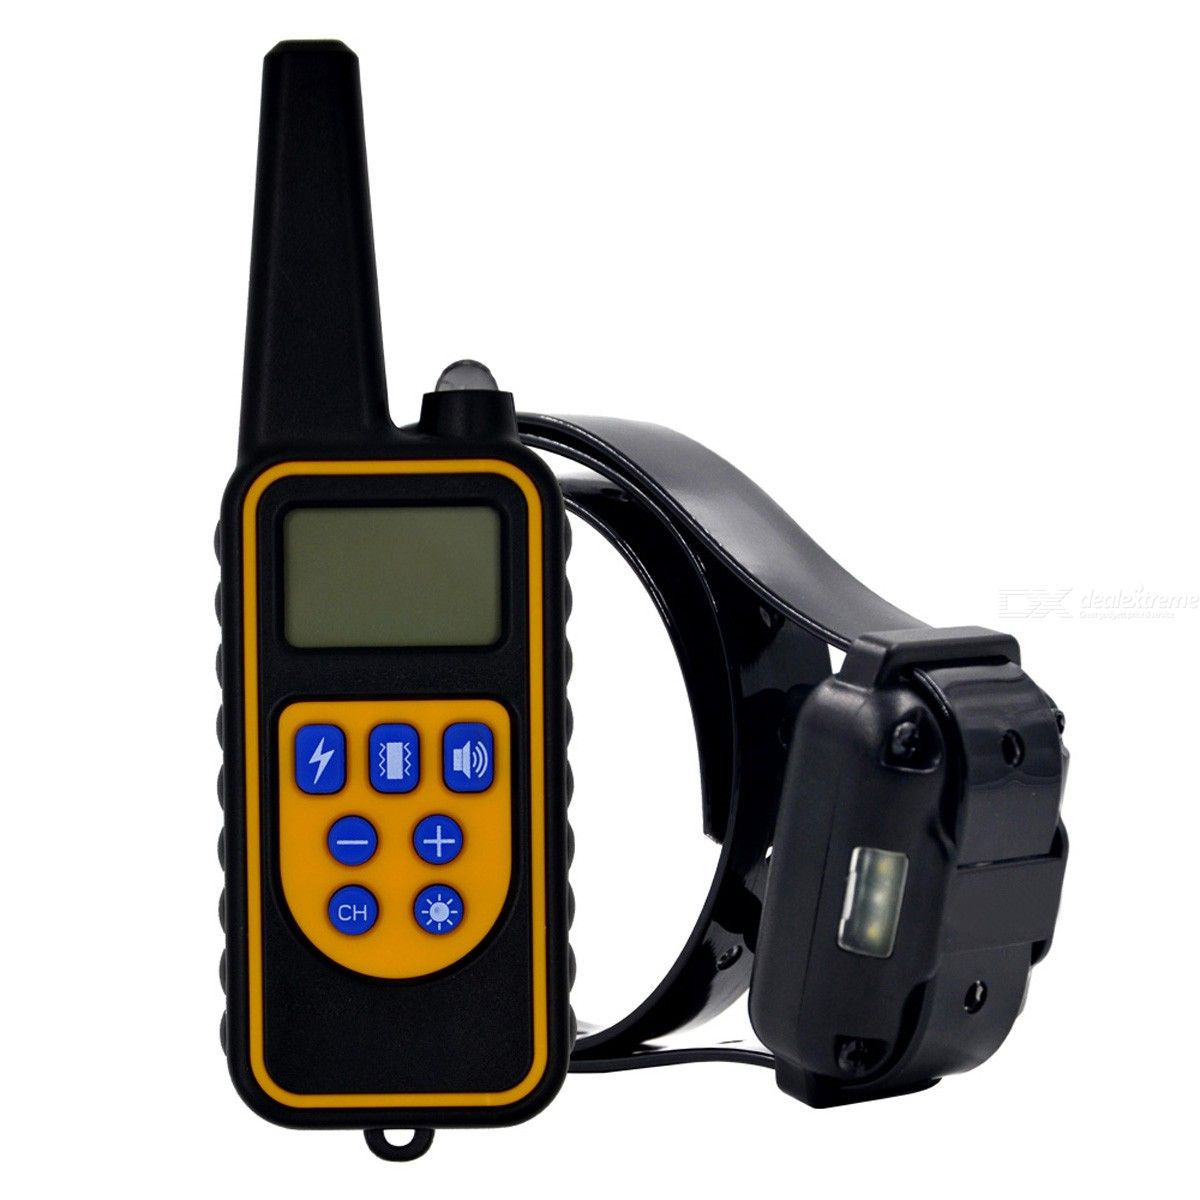 800m Rechargeable Waterproof Dog Training Collar (US Plug)